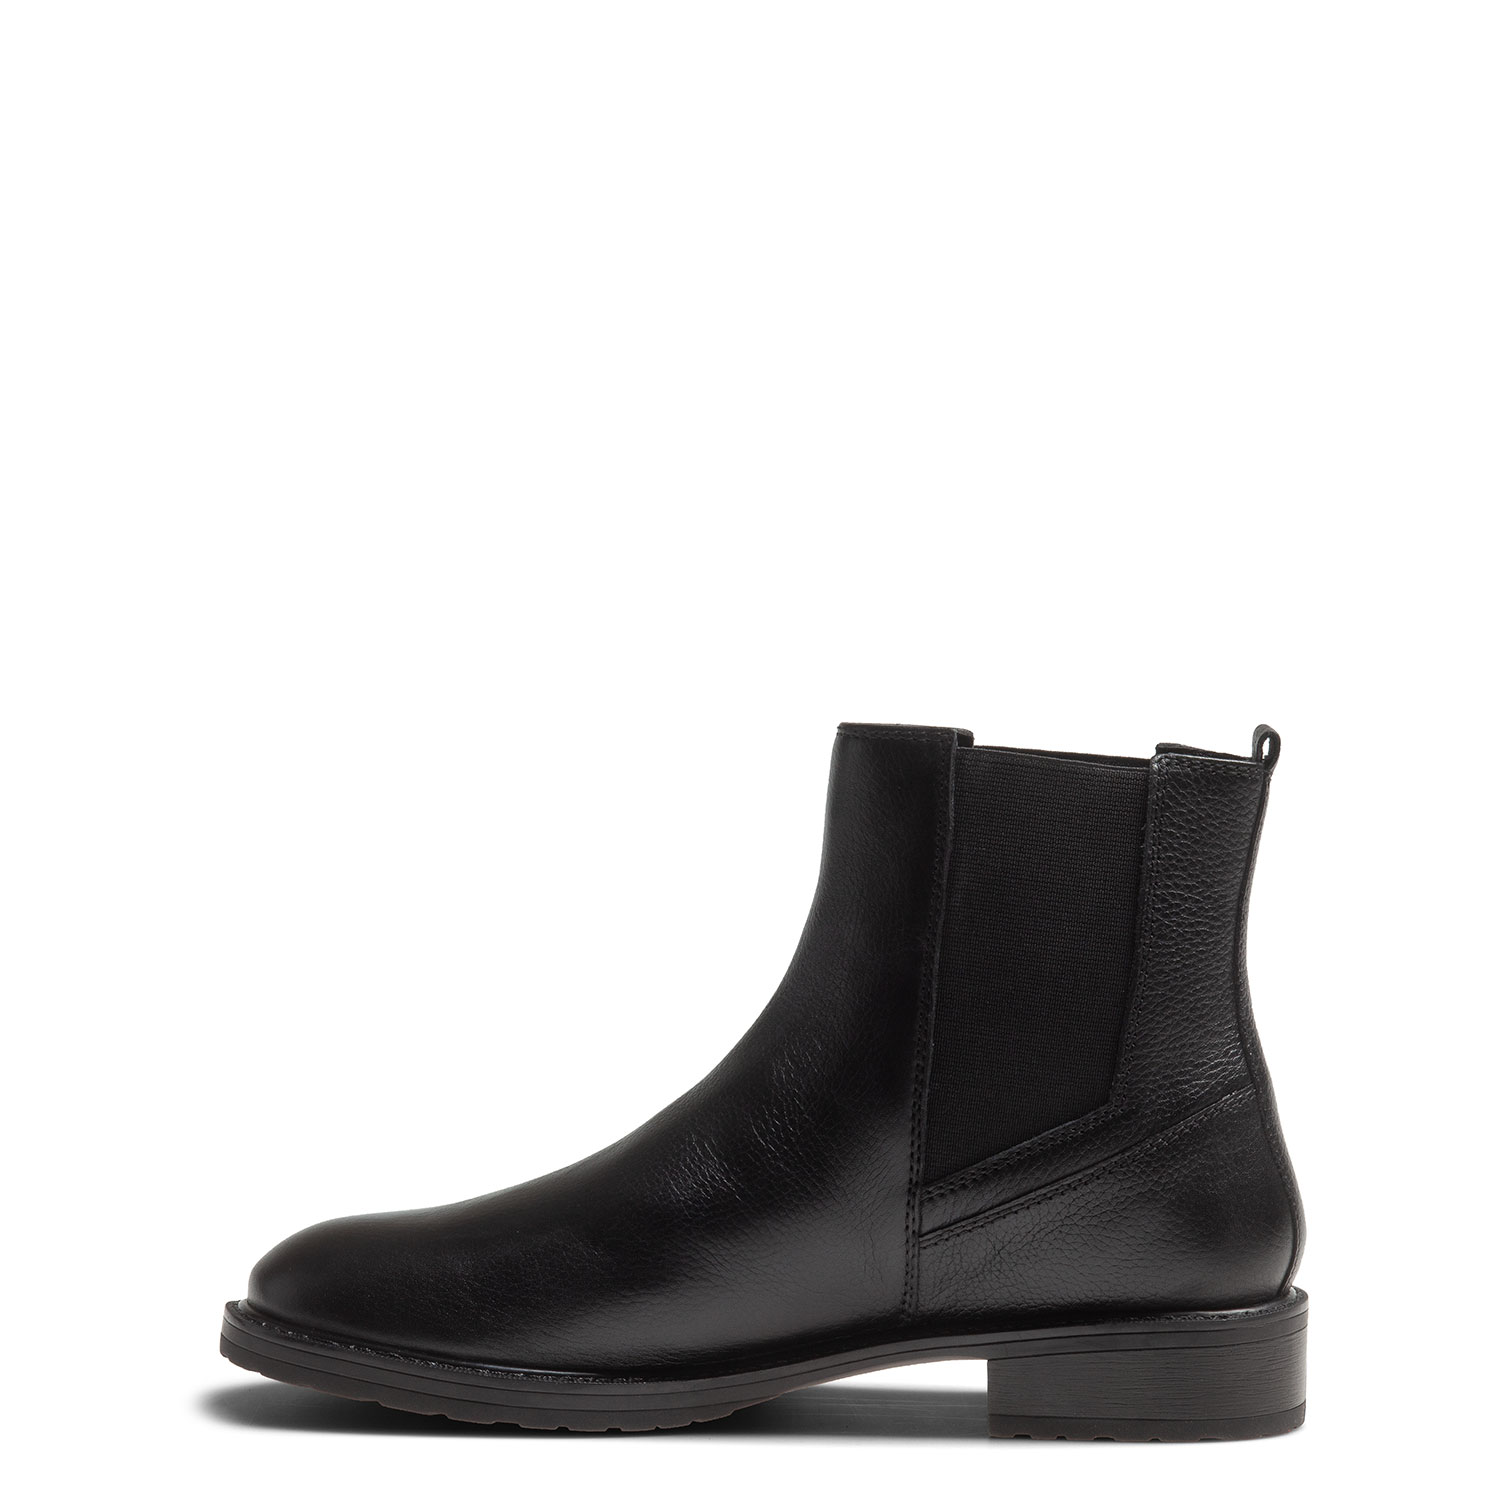 Women's ankle boots PAZOLINI OO-YVO14-1